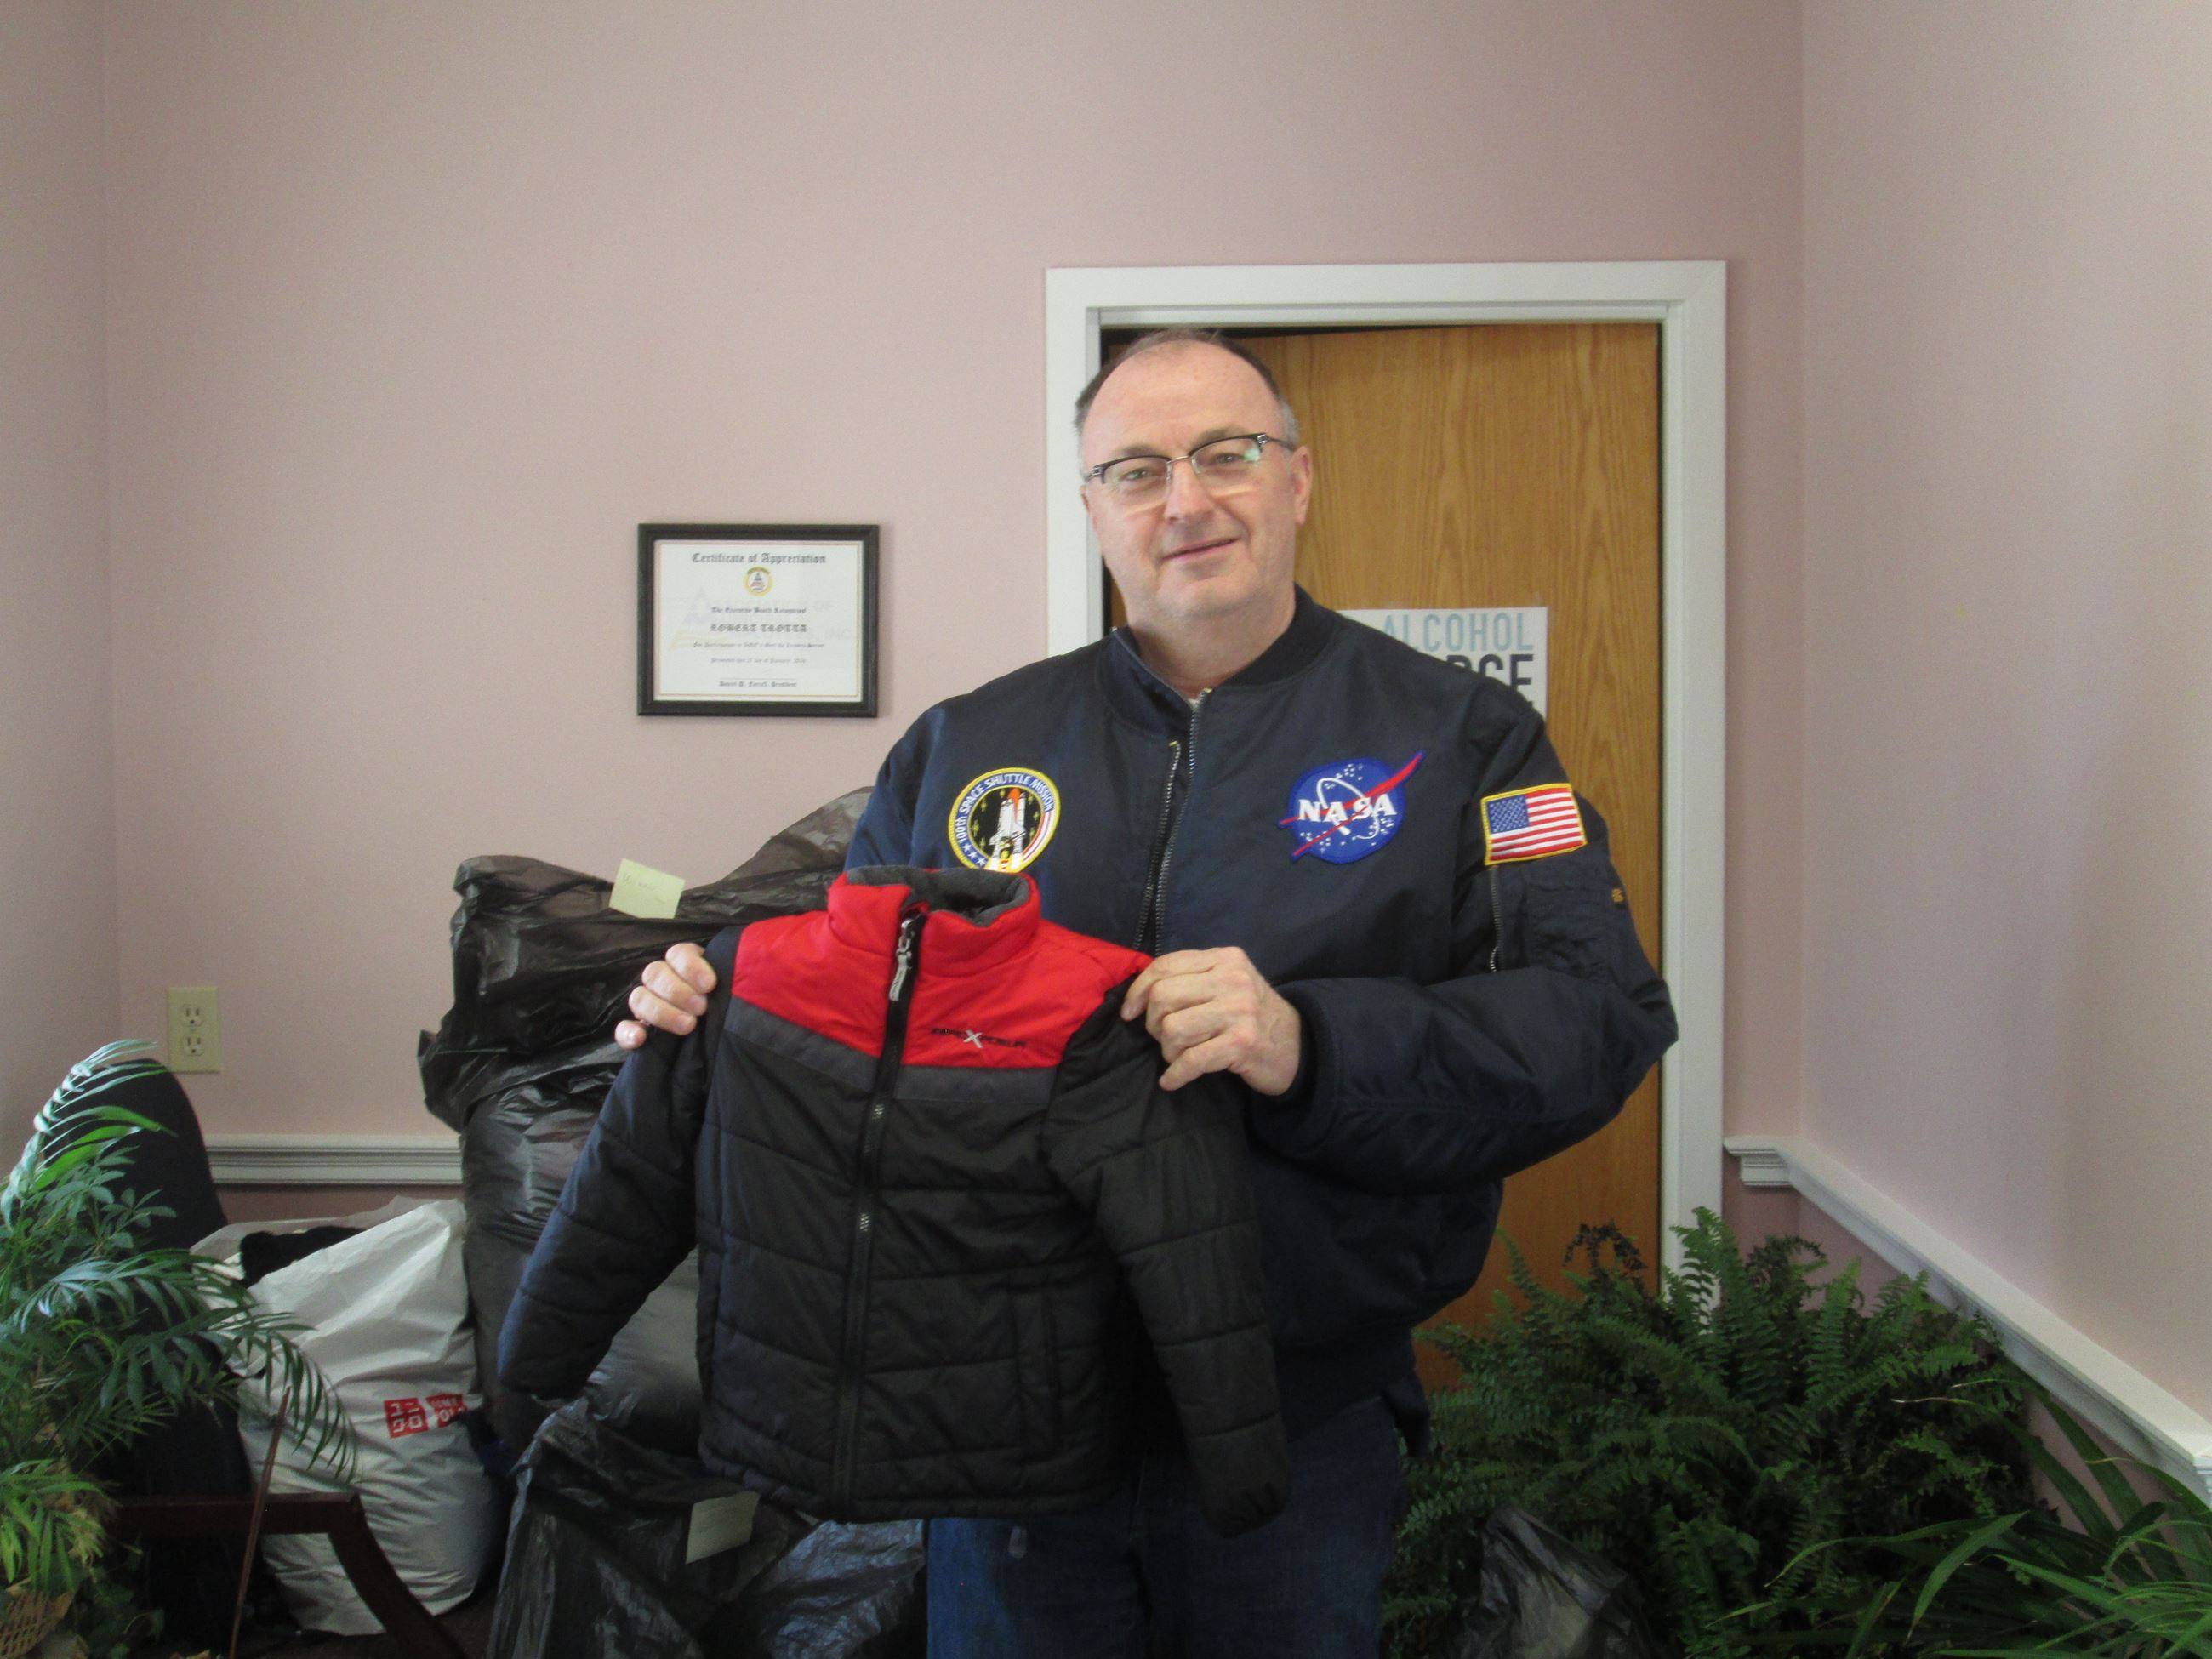 Legislator Trotta is pictured with some of the coat donations, as well as with a brand new jacket fr